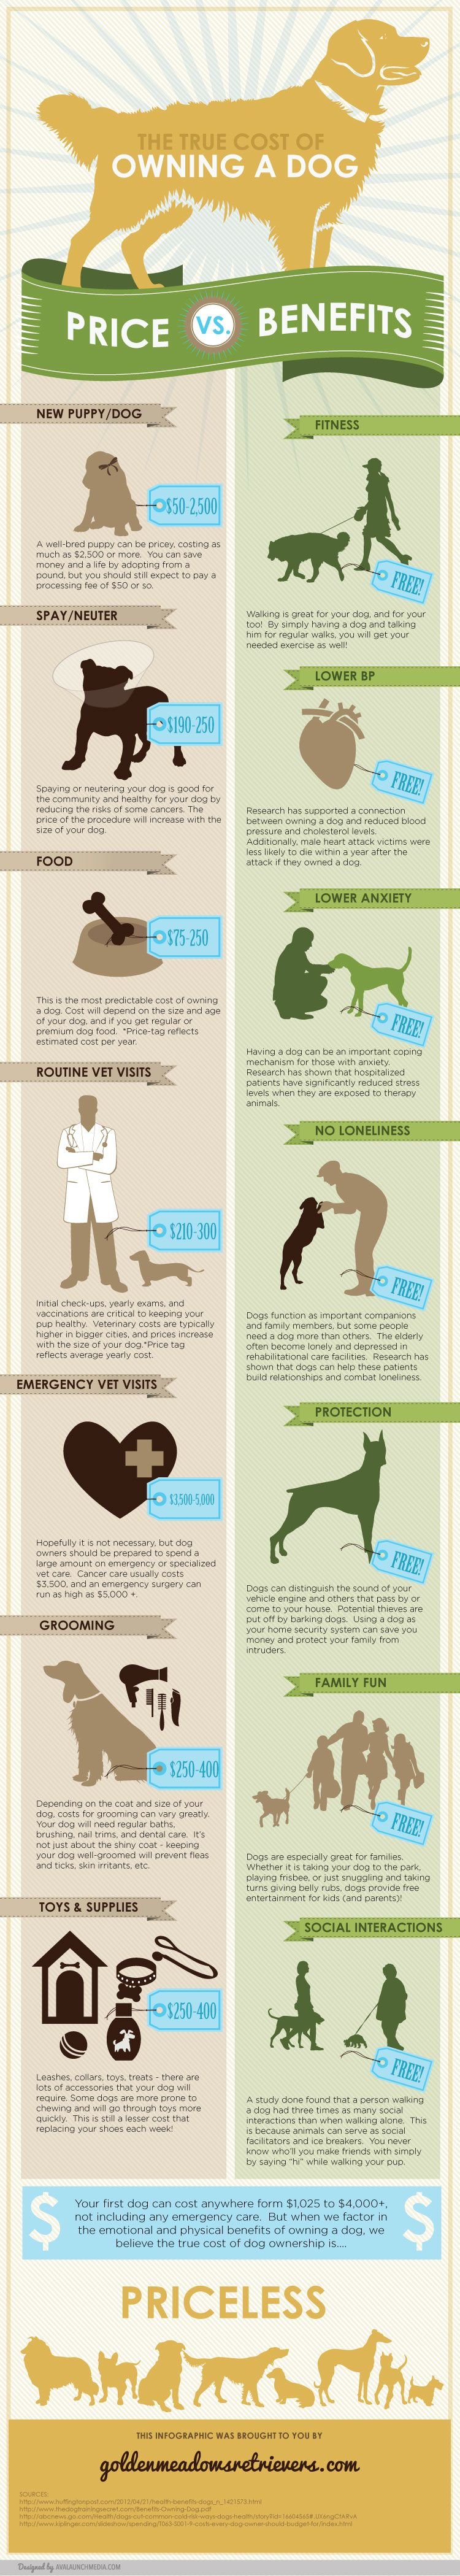 Presented by Golden Meadows Retrievers - Here is an awesome side by side comparison graphic showing the true cost of owning a dog - Price vs Benefits